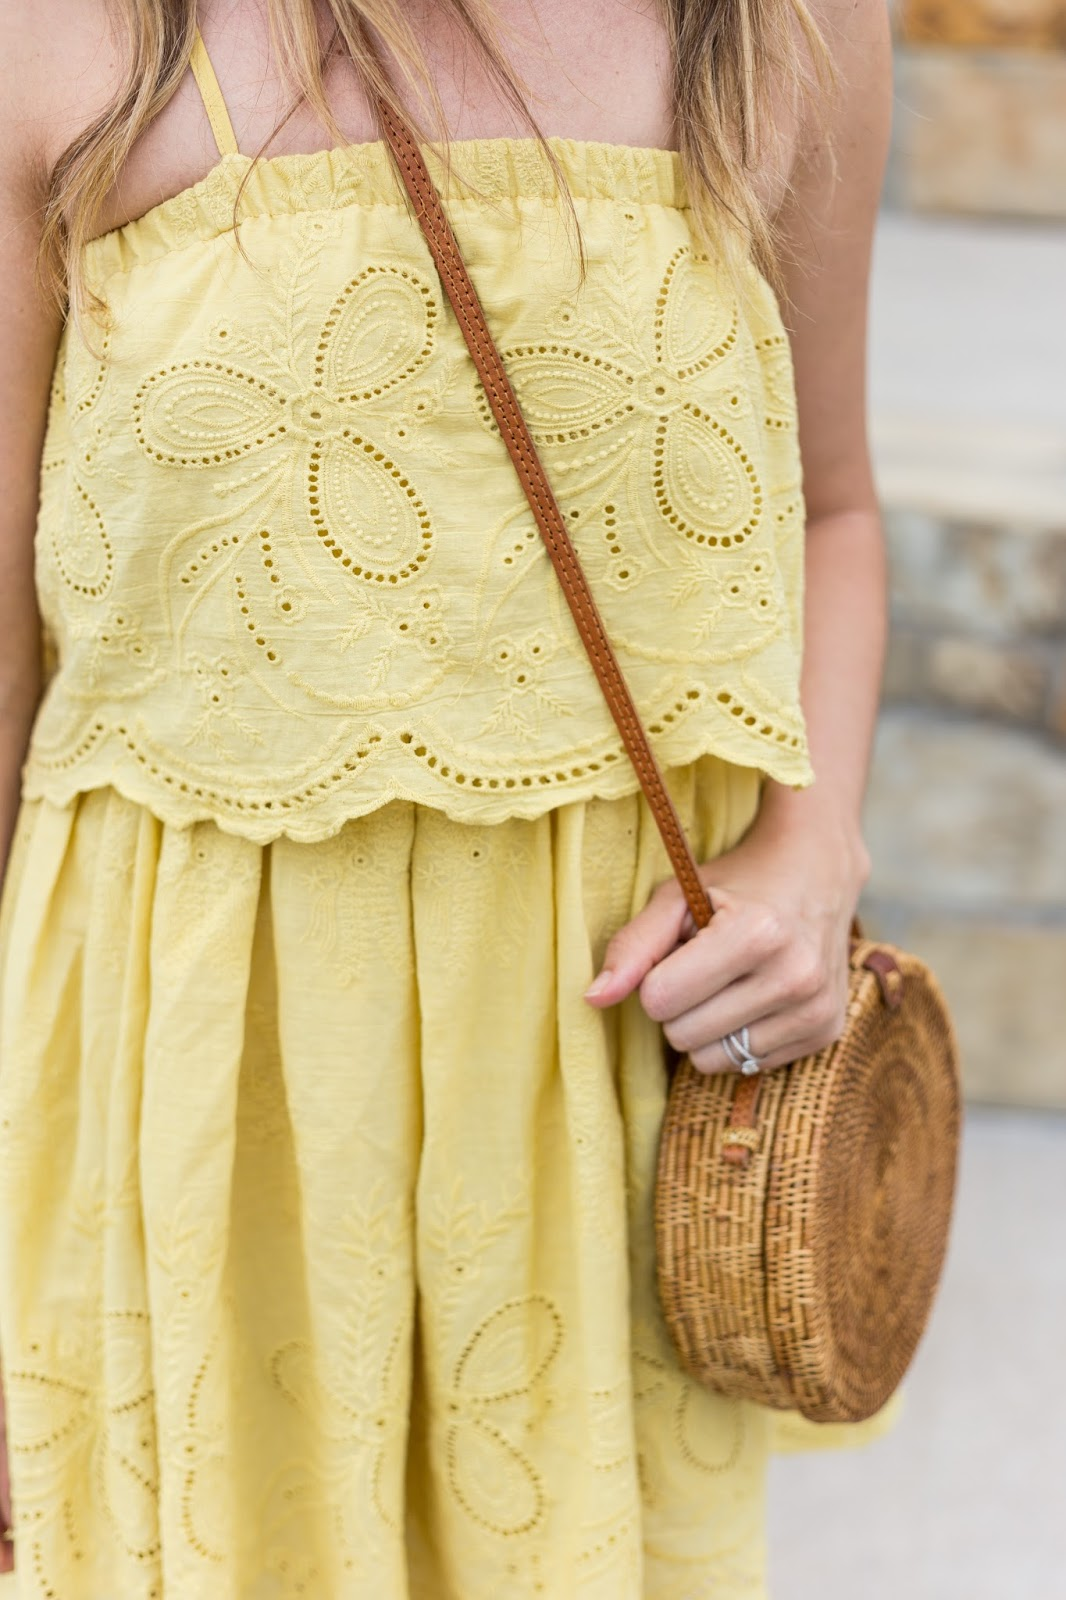 cutest eyelet dress